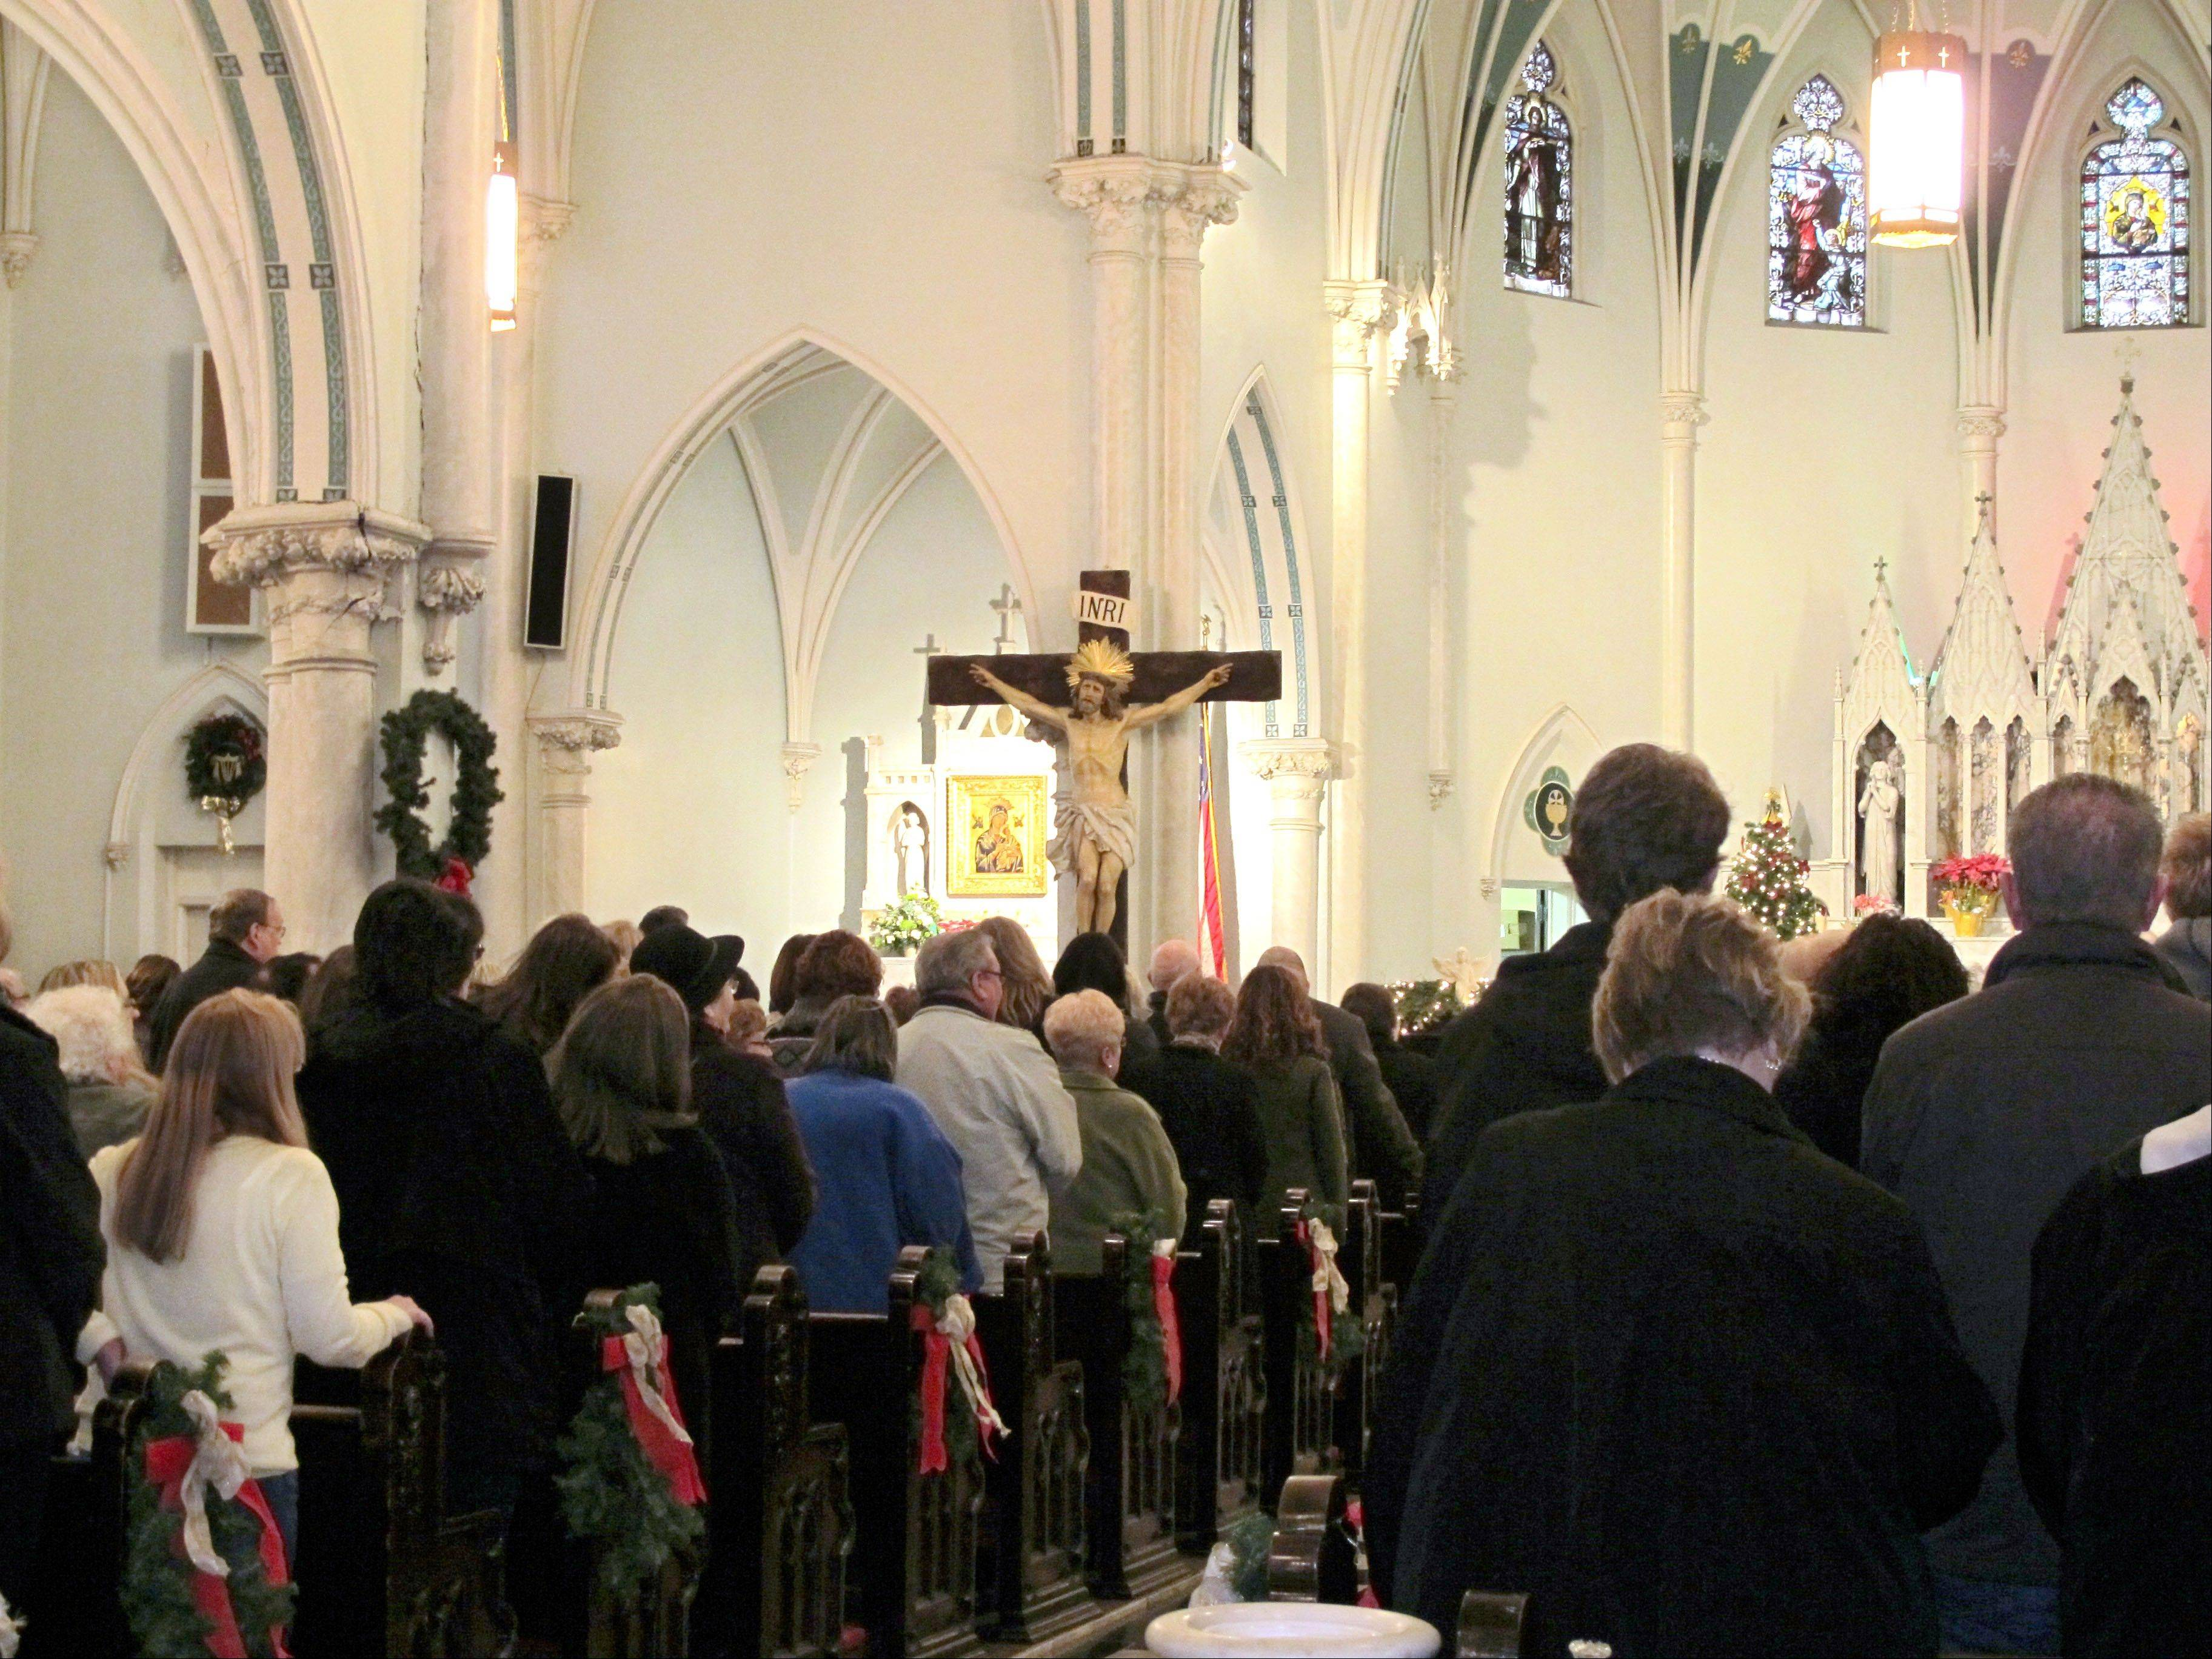 People gathered for mass inside Our Lady of Perpetual Help Church in Buffalo, N.Y., during a Mass mob. Borrowed from the idea of flash mobs, Mass mobs encourage crowds to attend Mass at a specified church on a certain day to fill pews, lift spirits and help financially some of the city�s oldest but often sparsely attended churches.